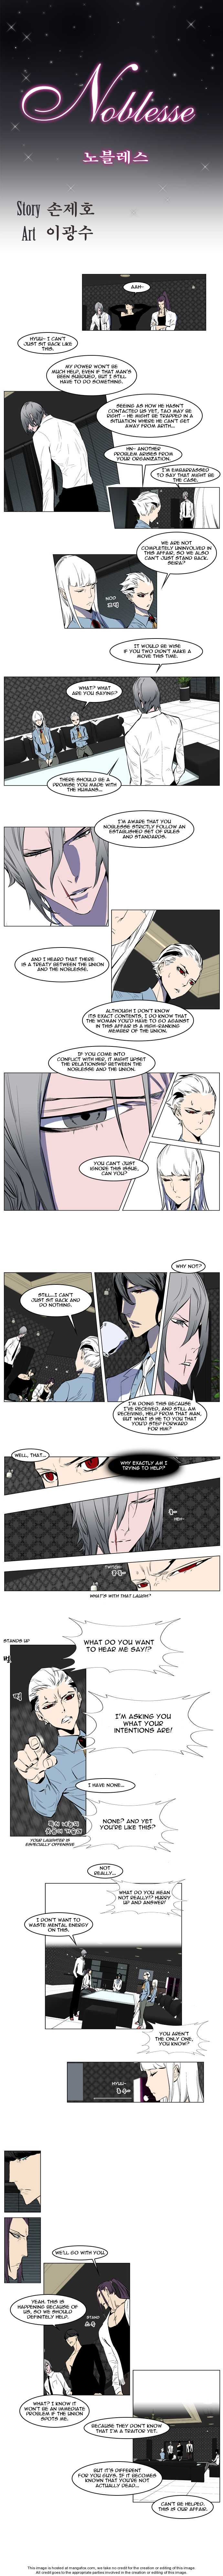 Noblesse 145 Page 1